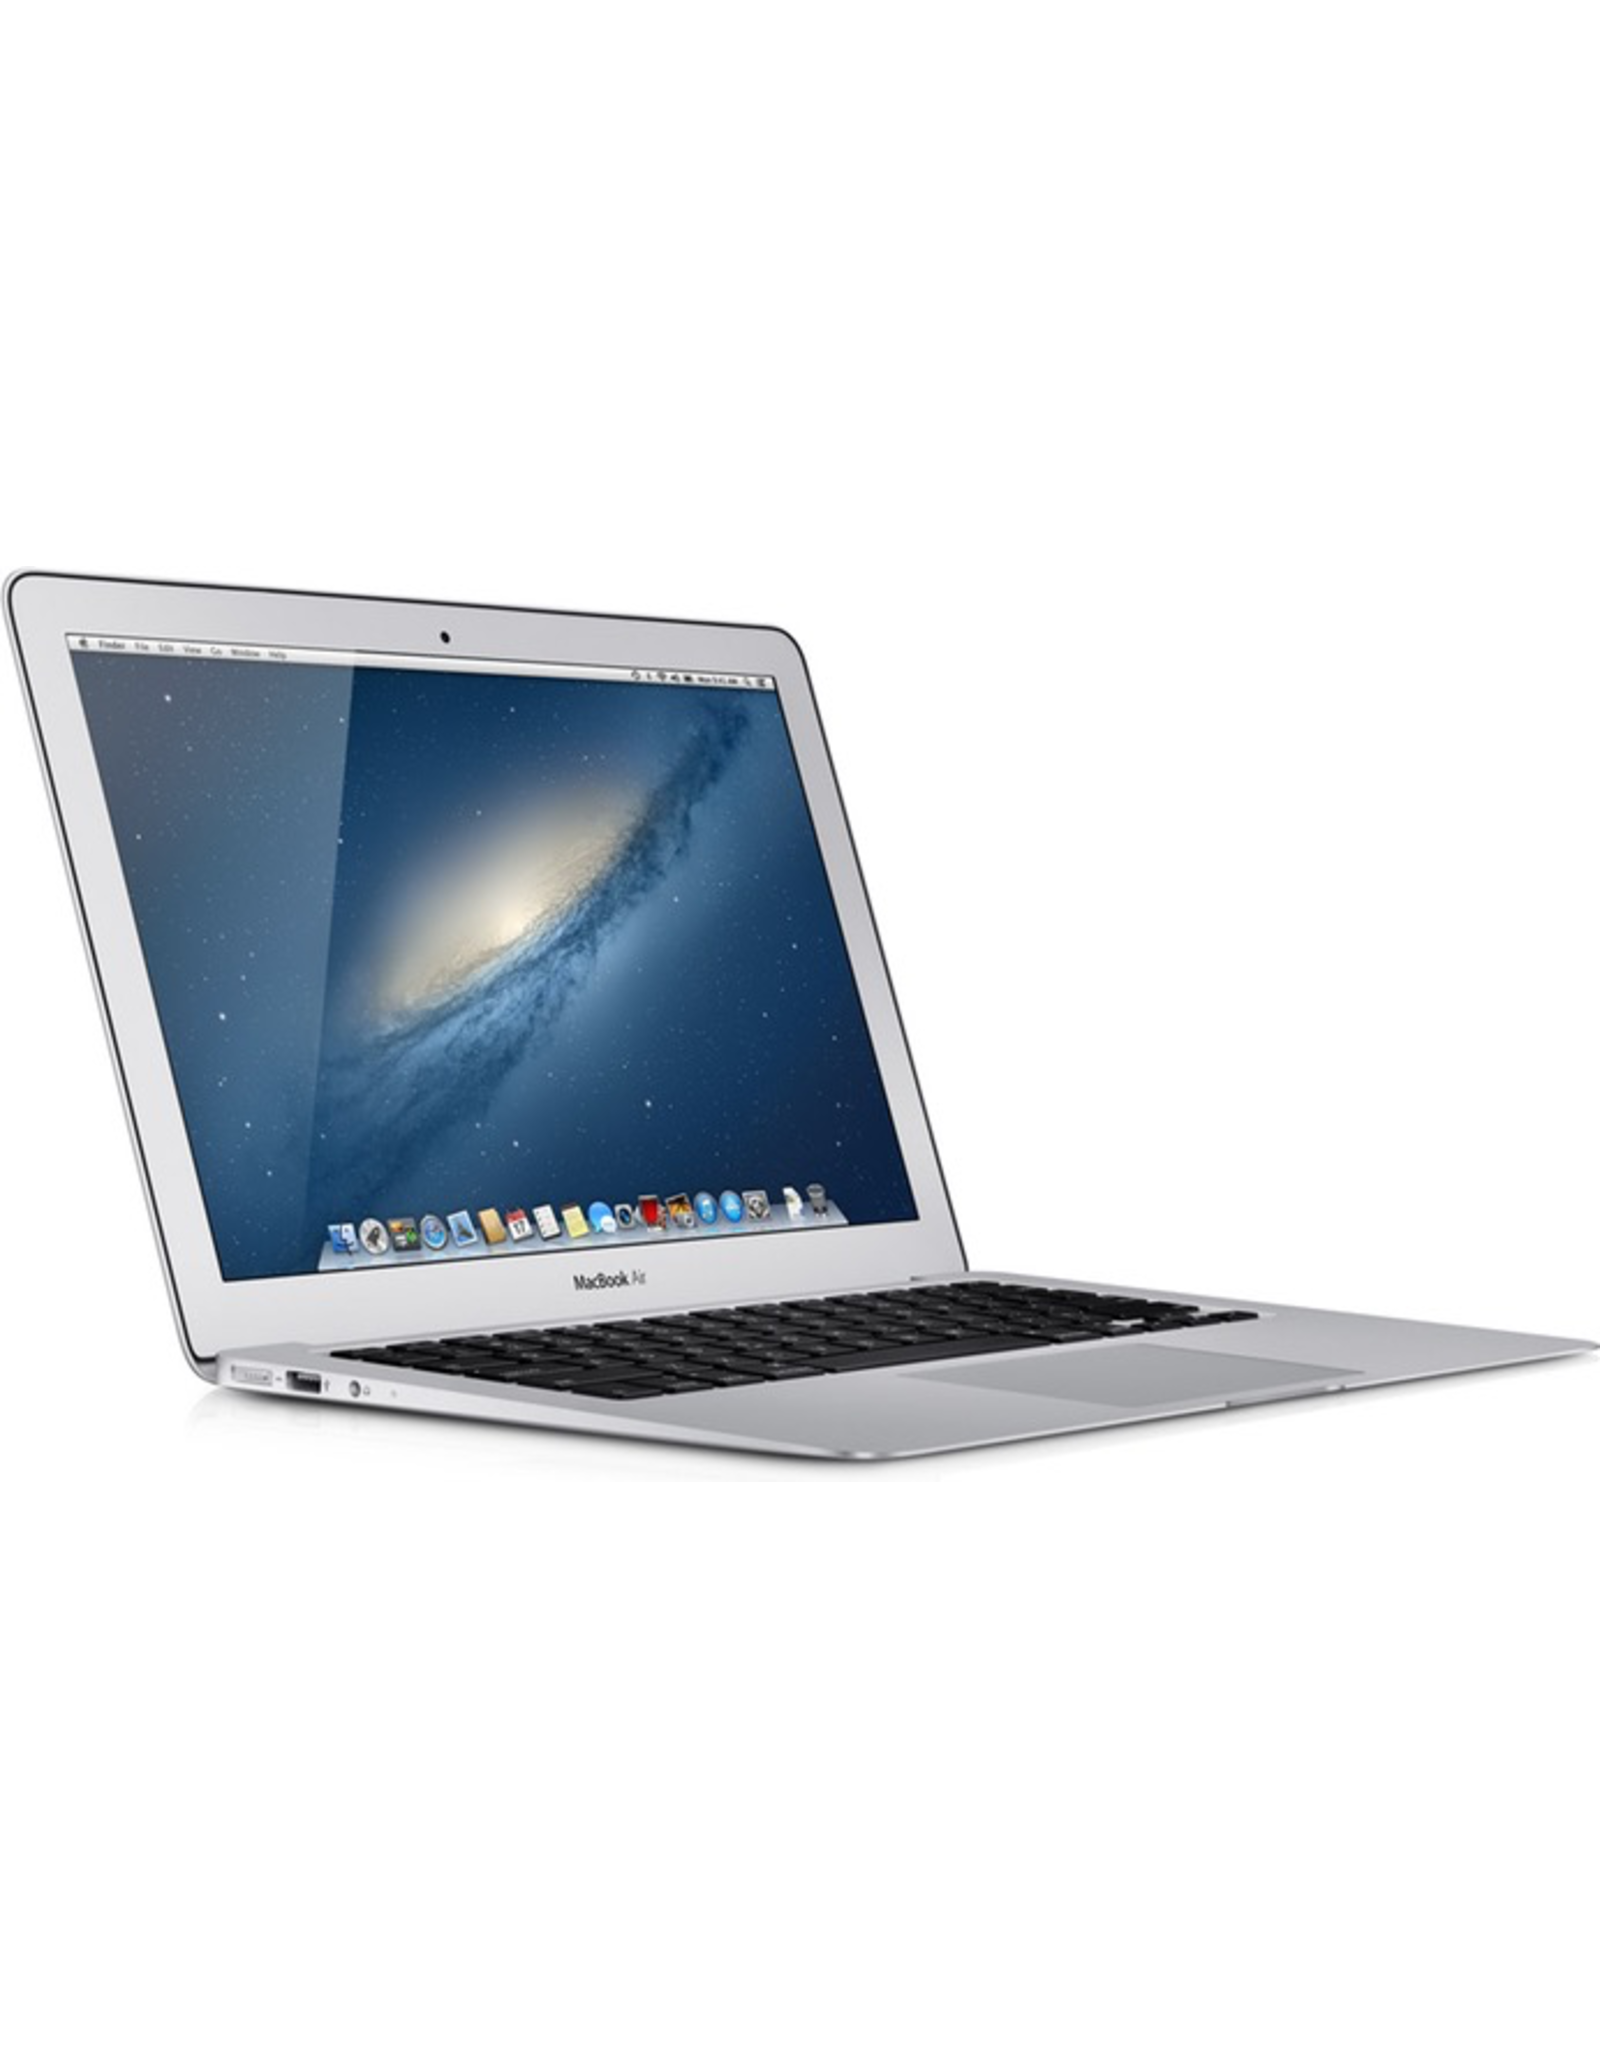 Apple MacBook Air (13-Inch, Mid 2013) - French Canadian Keyboard / 1.3 GHz Intel Core i5 / 4GB RAM / 128GB SSD / 30 Day Exchange